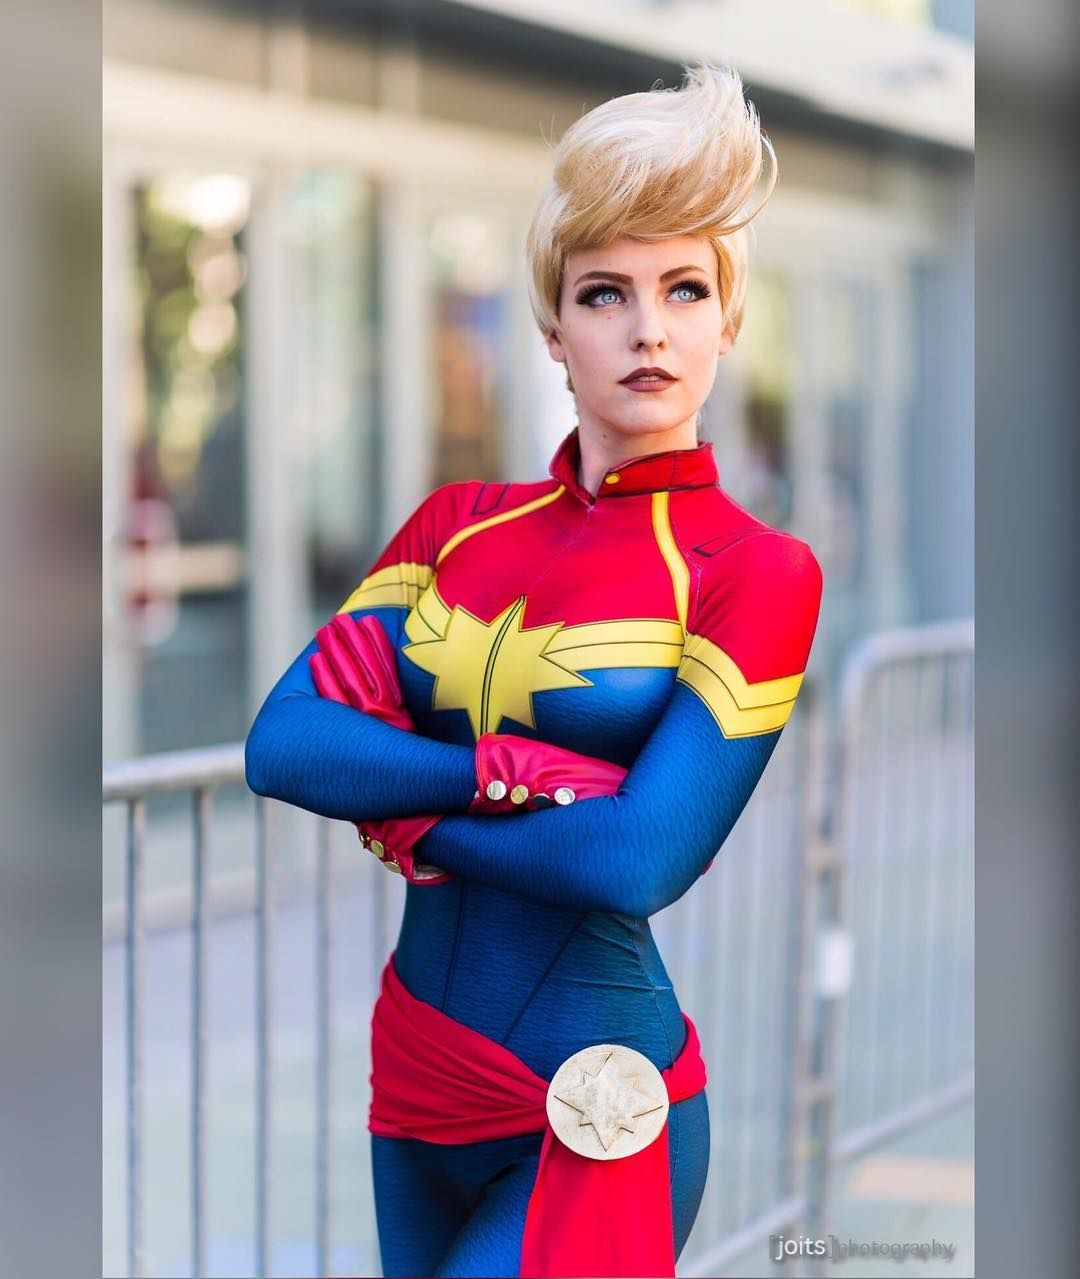 Marvel Malvorlagen Marvel Superhero The Marvel Super: Hello Captain Marvel! [Cosplay]